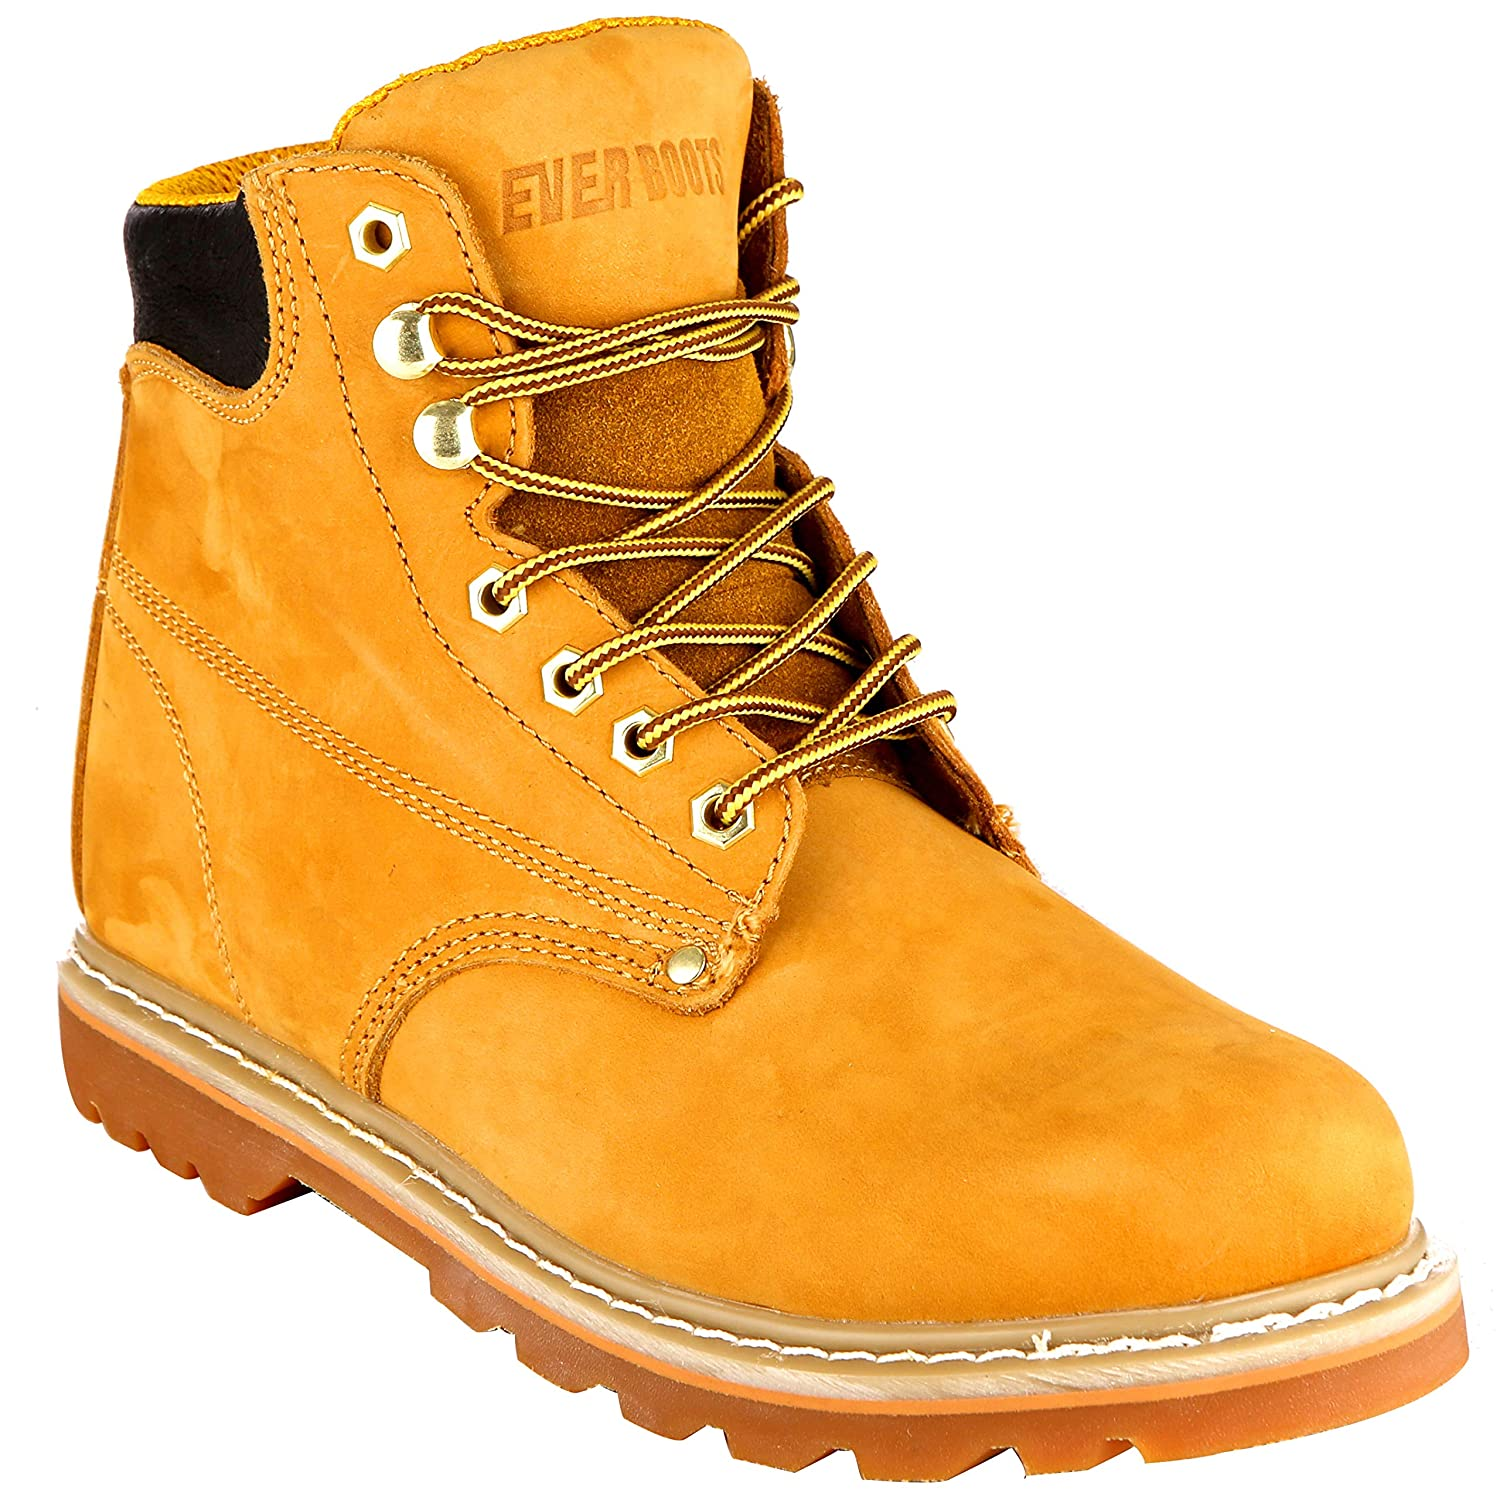 EVER BOOTS Tank Mens Soft Toe Oil Full Grain Leather Insulated Work Boots Construction Rubber Sole